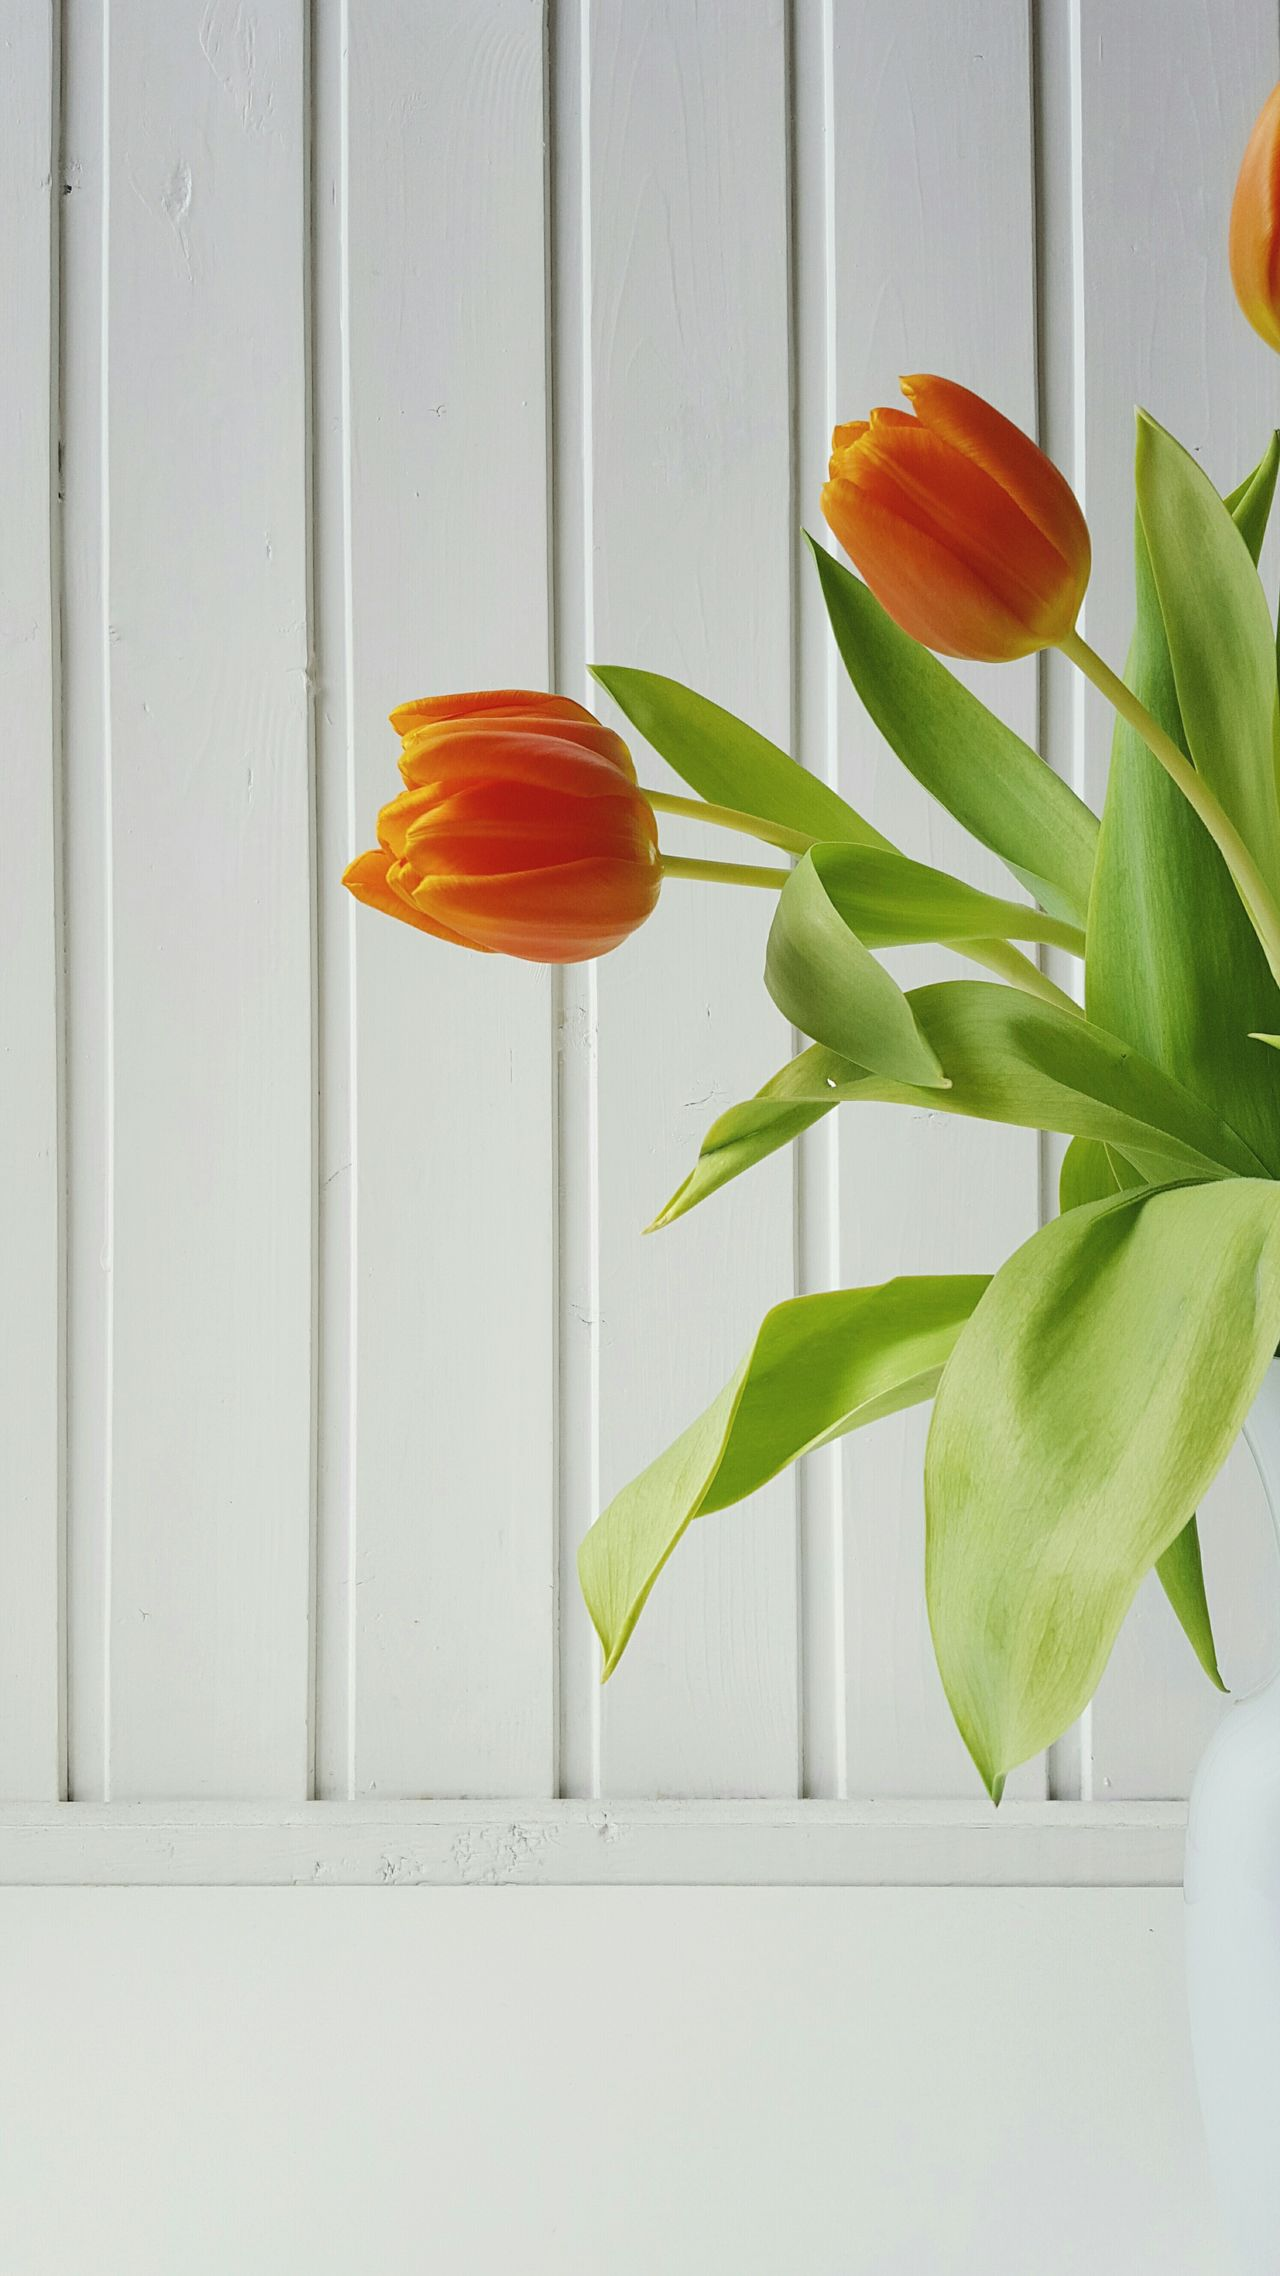 Minimal Showcase: February White Wall White Wood Orange Tulips Blossoms  Green Leafes Flower Petals Nature Delicious Smell Spring Vase Decorating Interior Design Flowers Bouquet Framing White Album Minimalism Scent Lines Porcelain  Gift